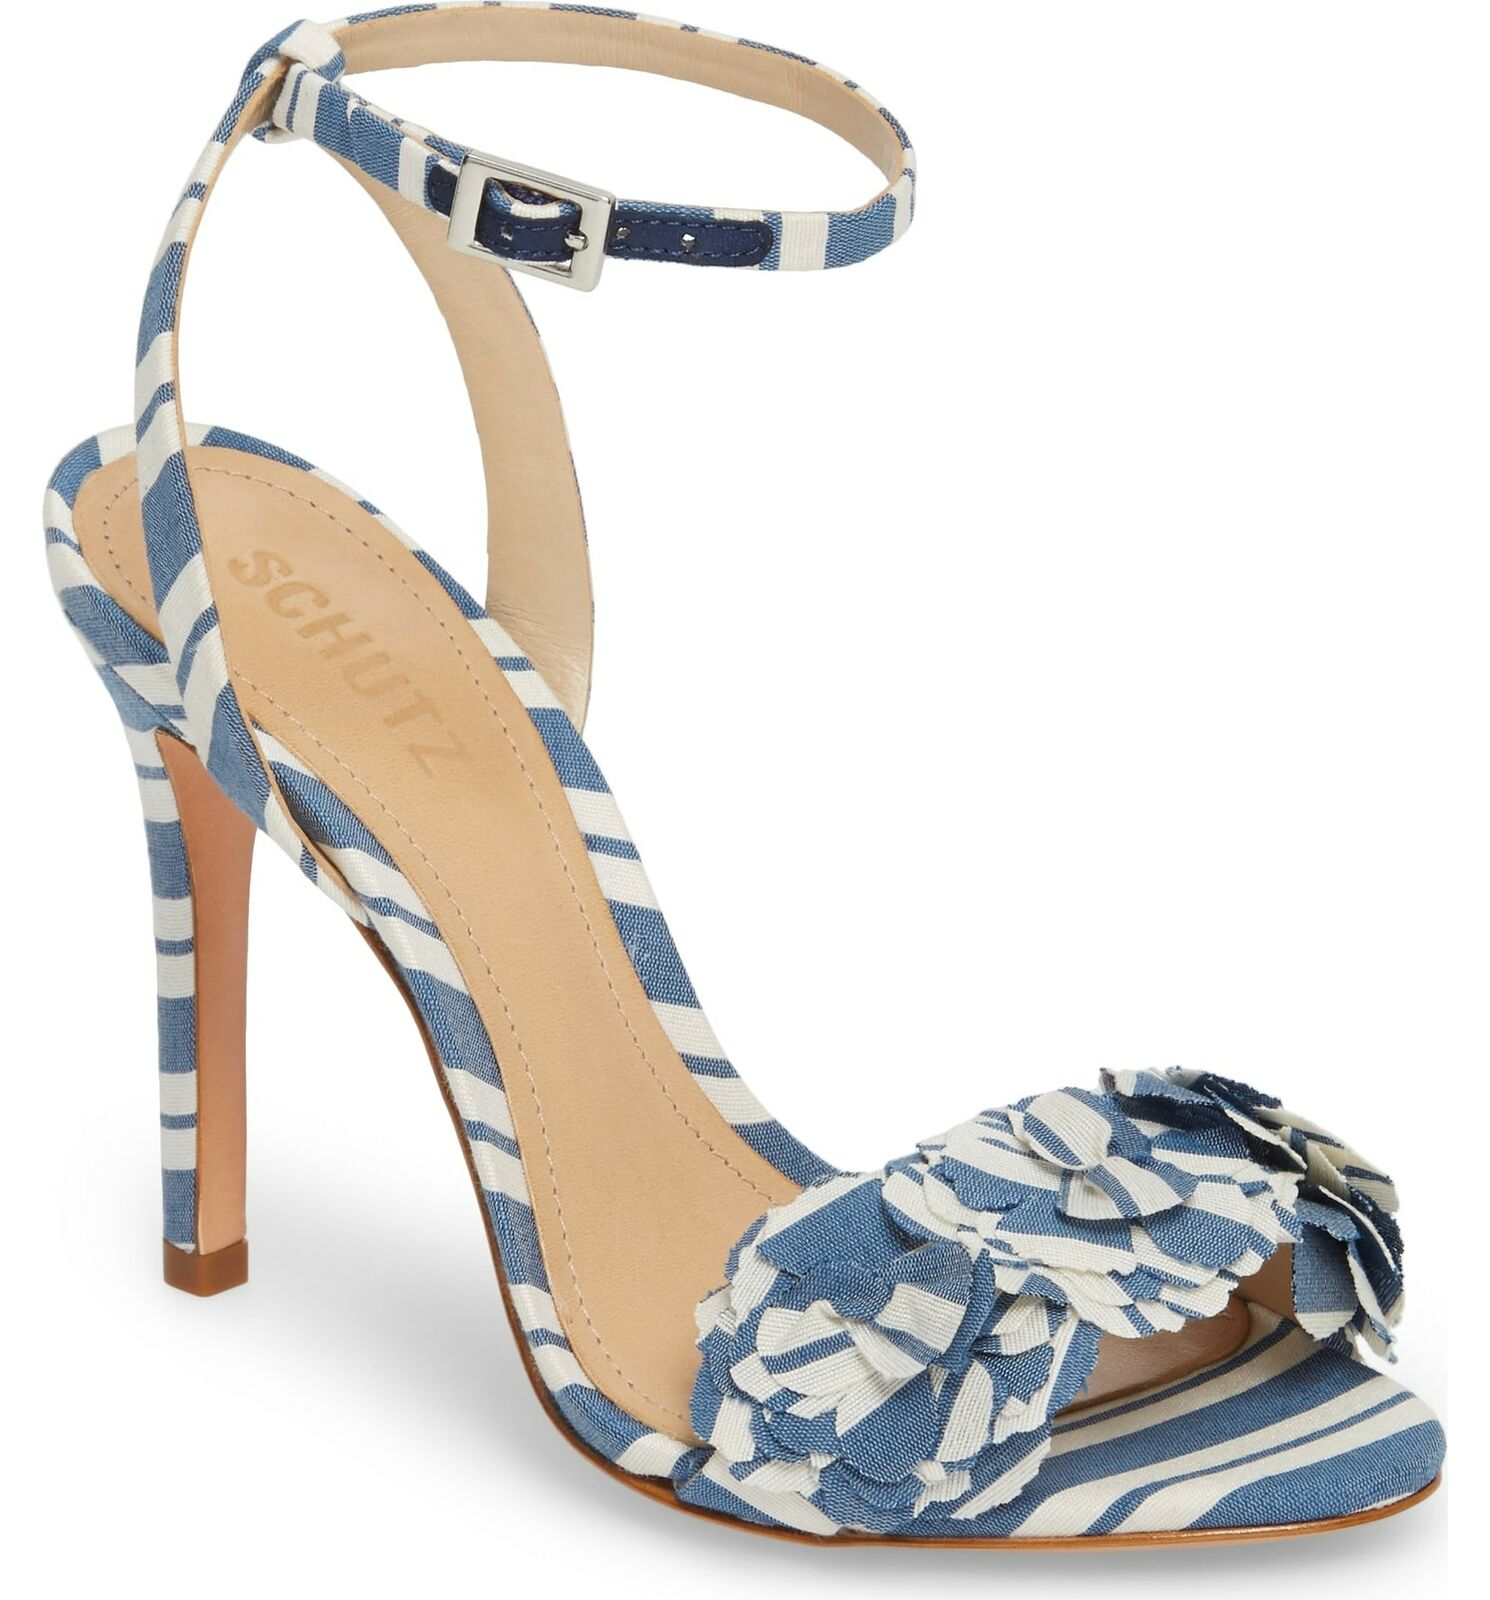 Schutz Aida Dress blu New Stripe High Heel Pump Flower Appliqué Stiletto Sandal